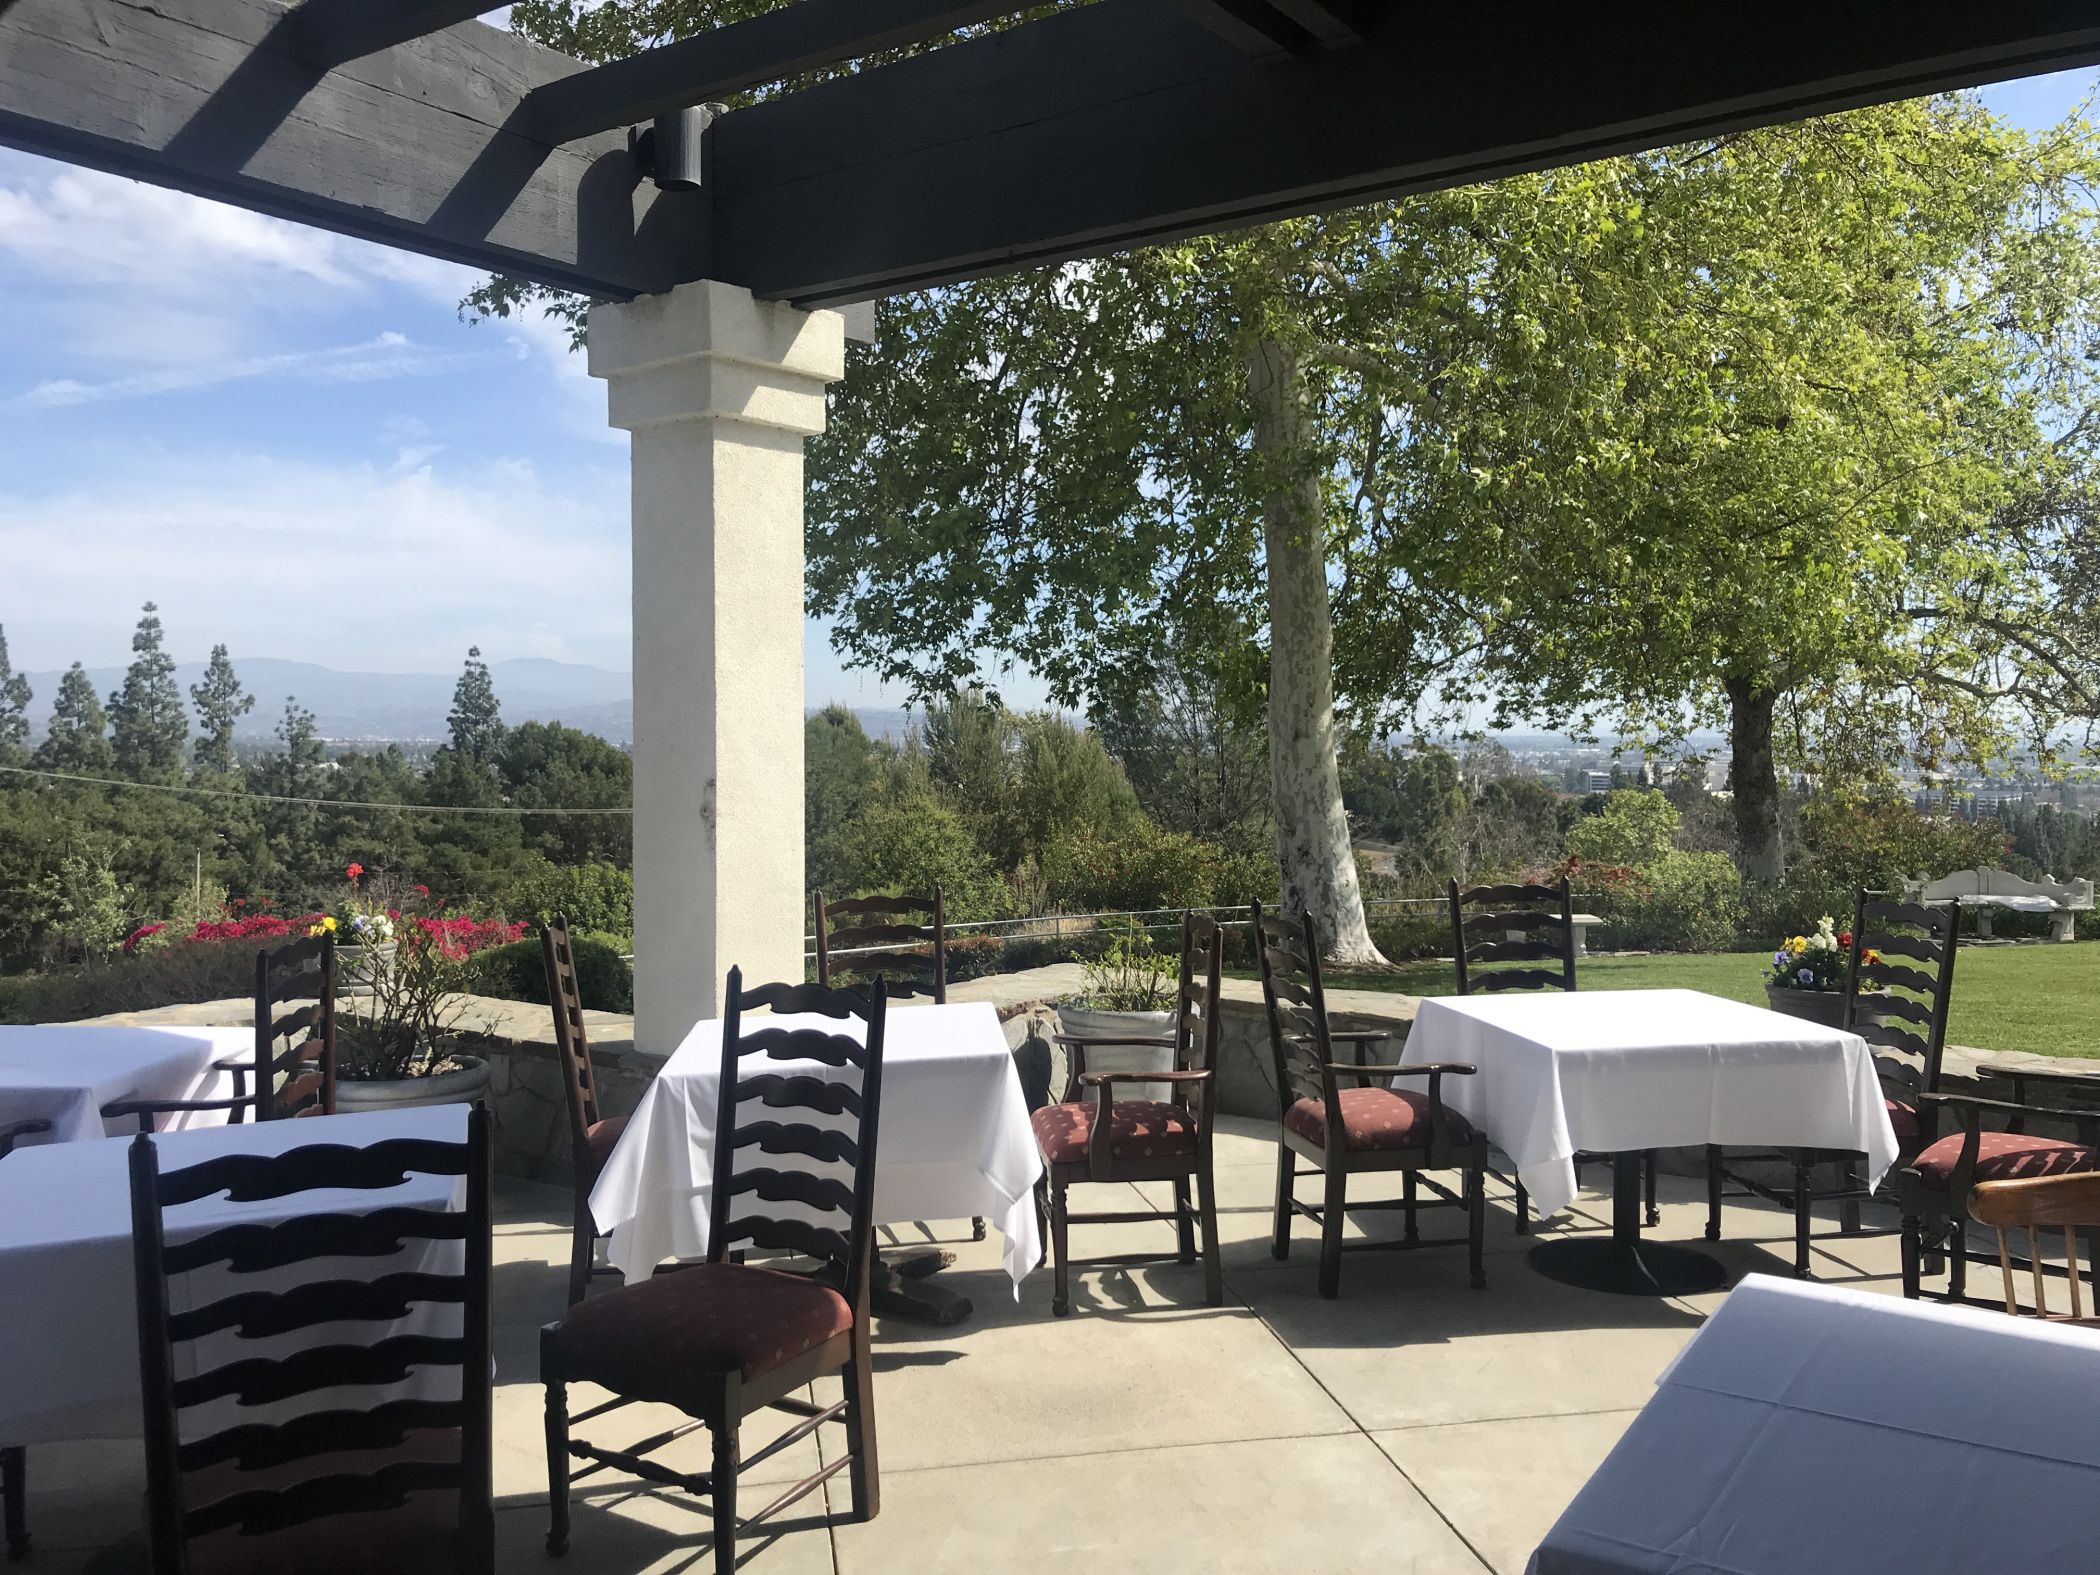 Outdoor seating at the Summit House Restaurant in Fullerton